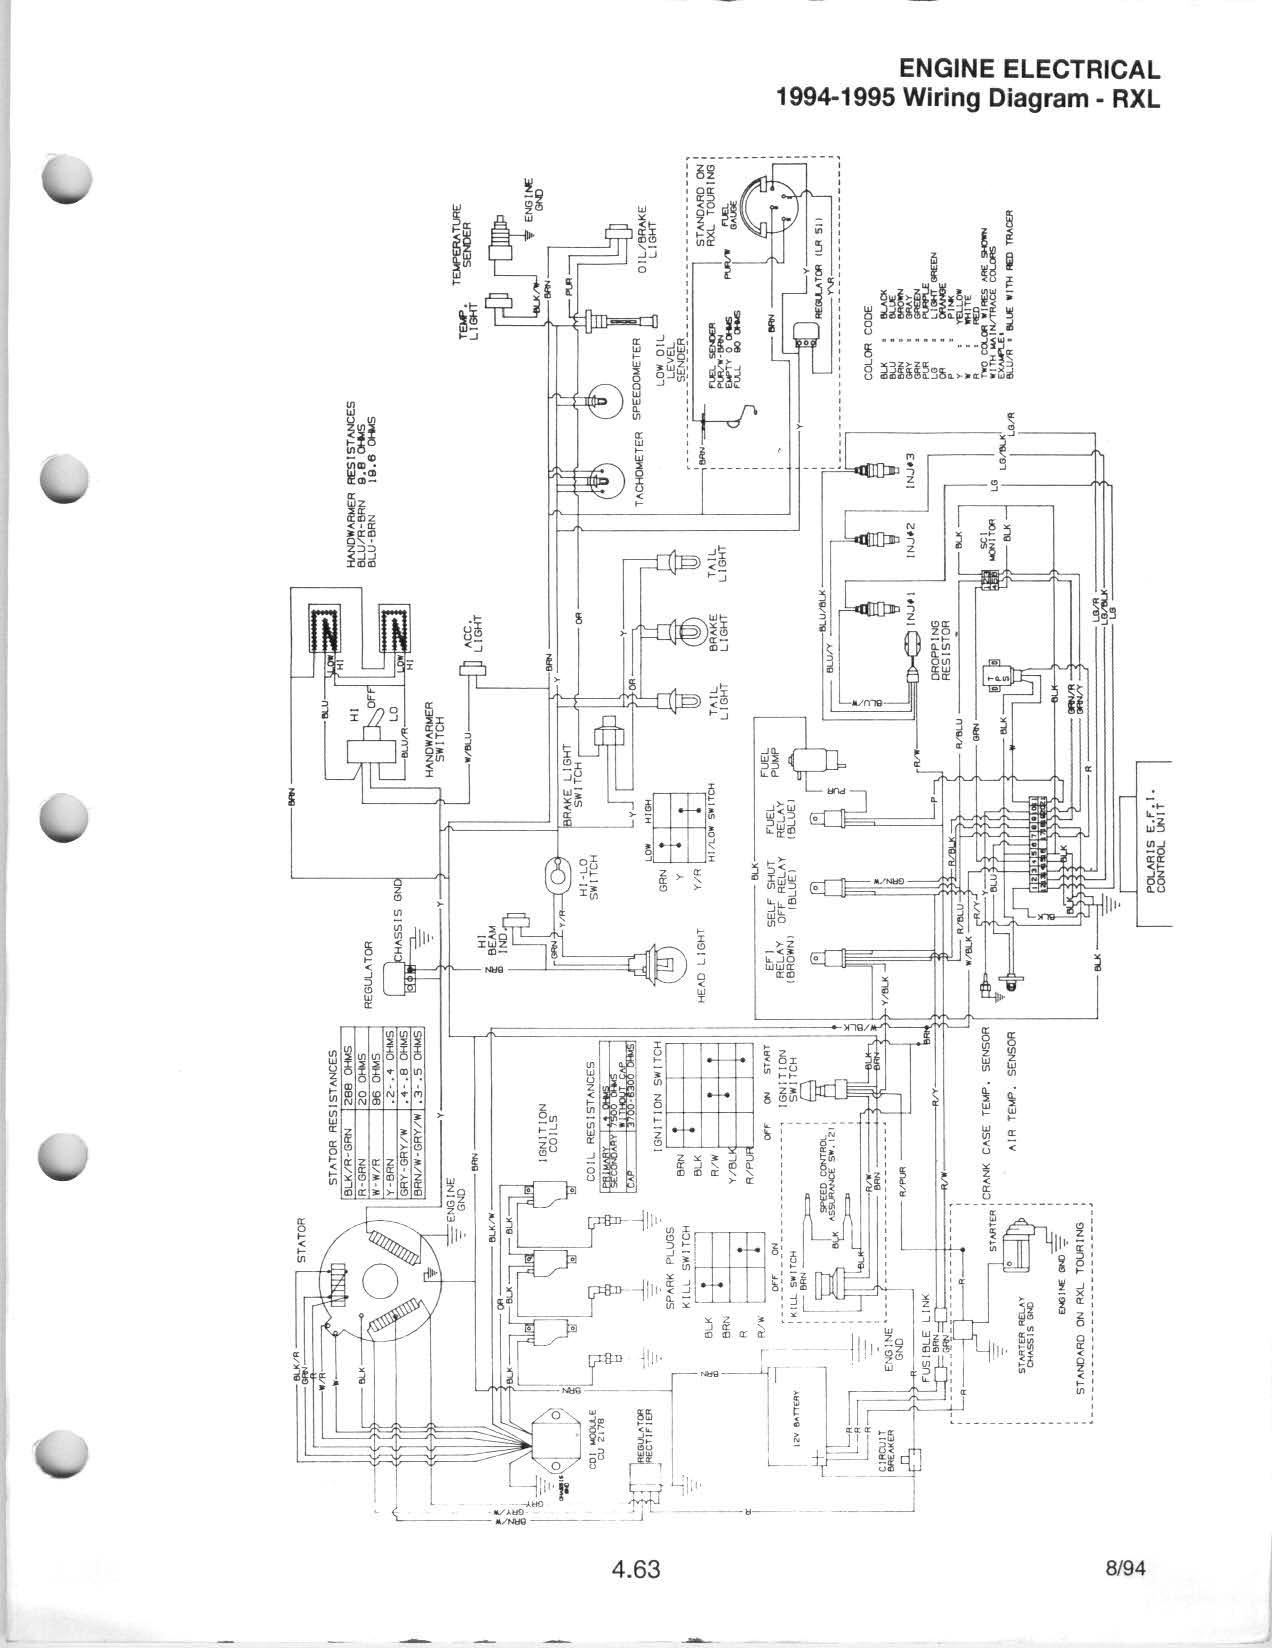 wiring diagram for 2007 polaris xp 700 ranger polaris ranger fuel pump wiring diagram collection